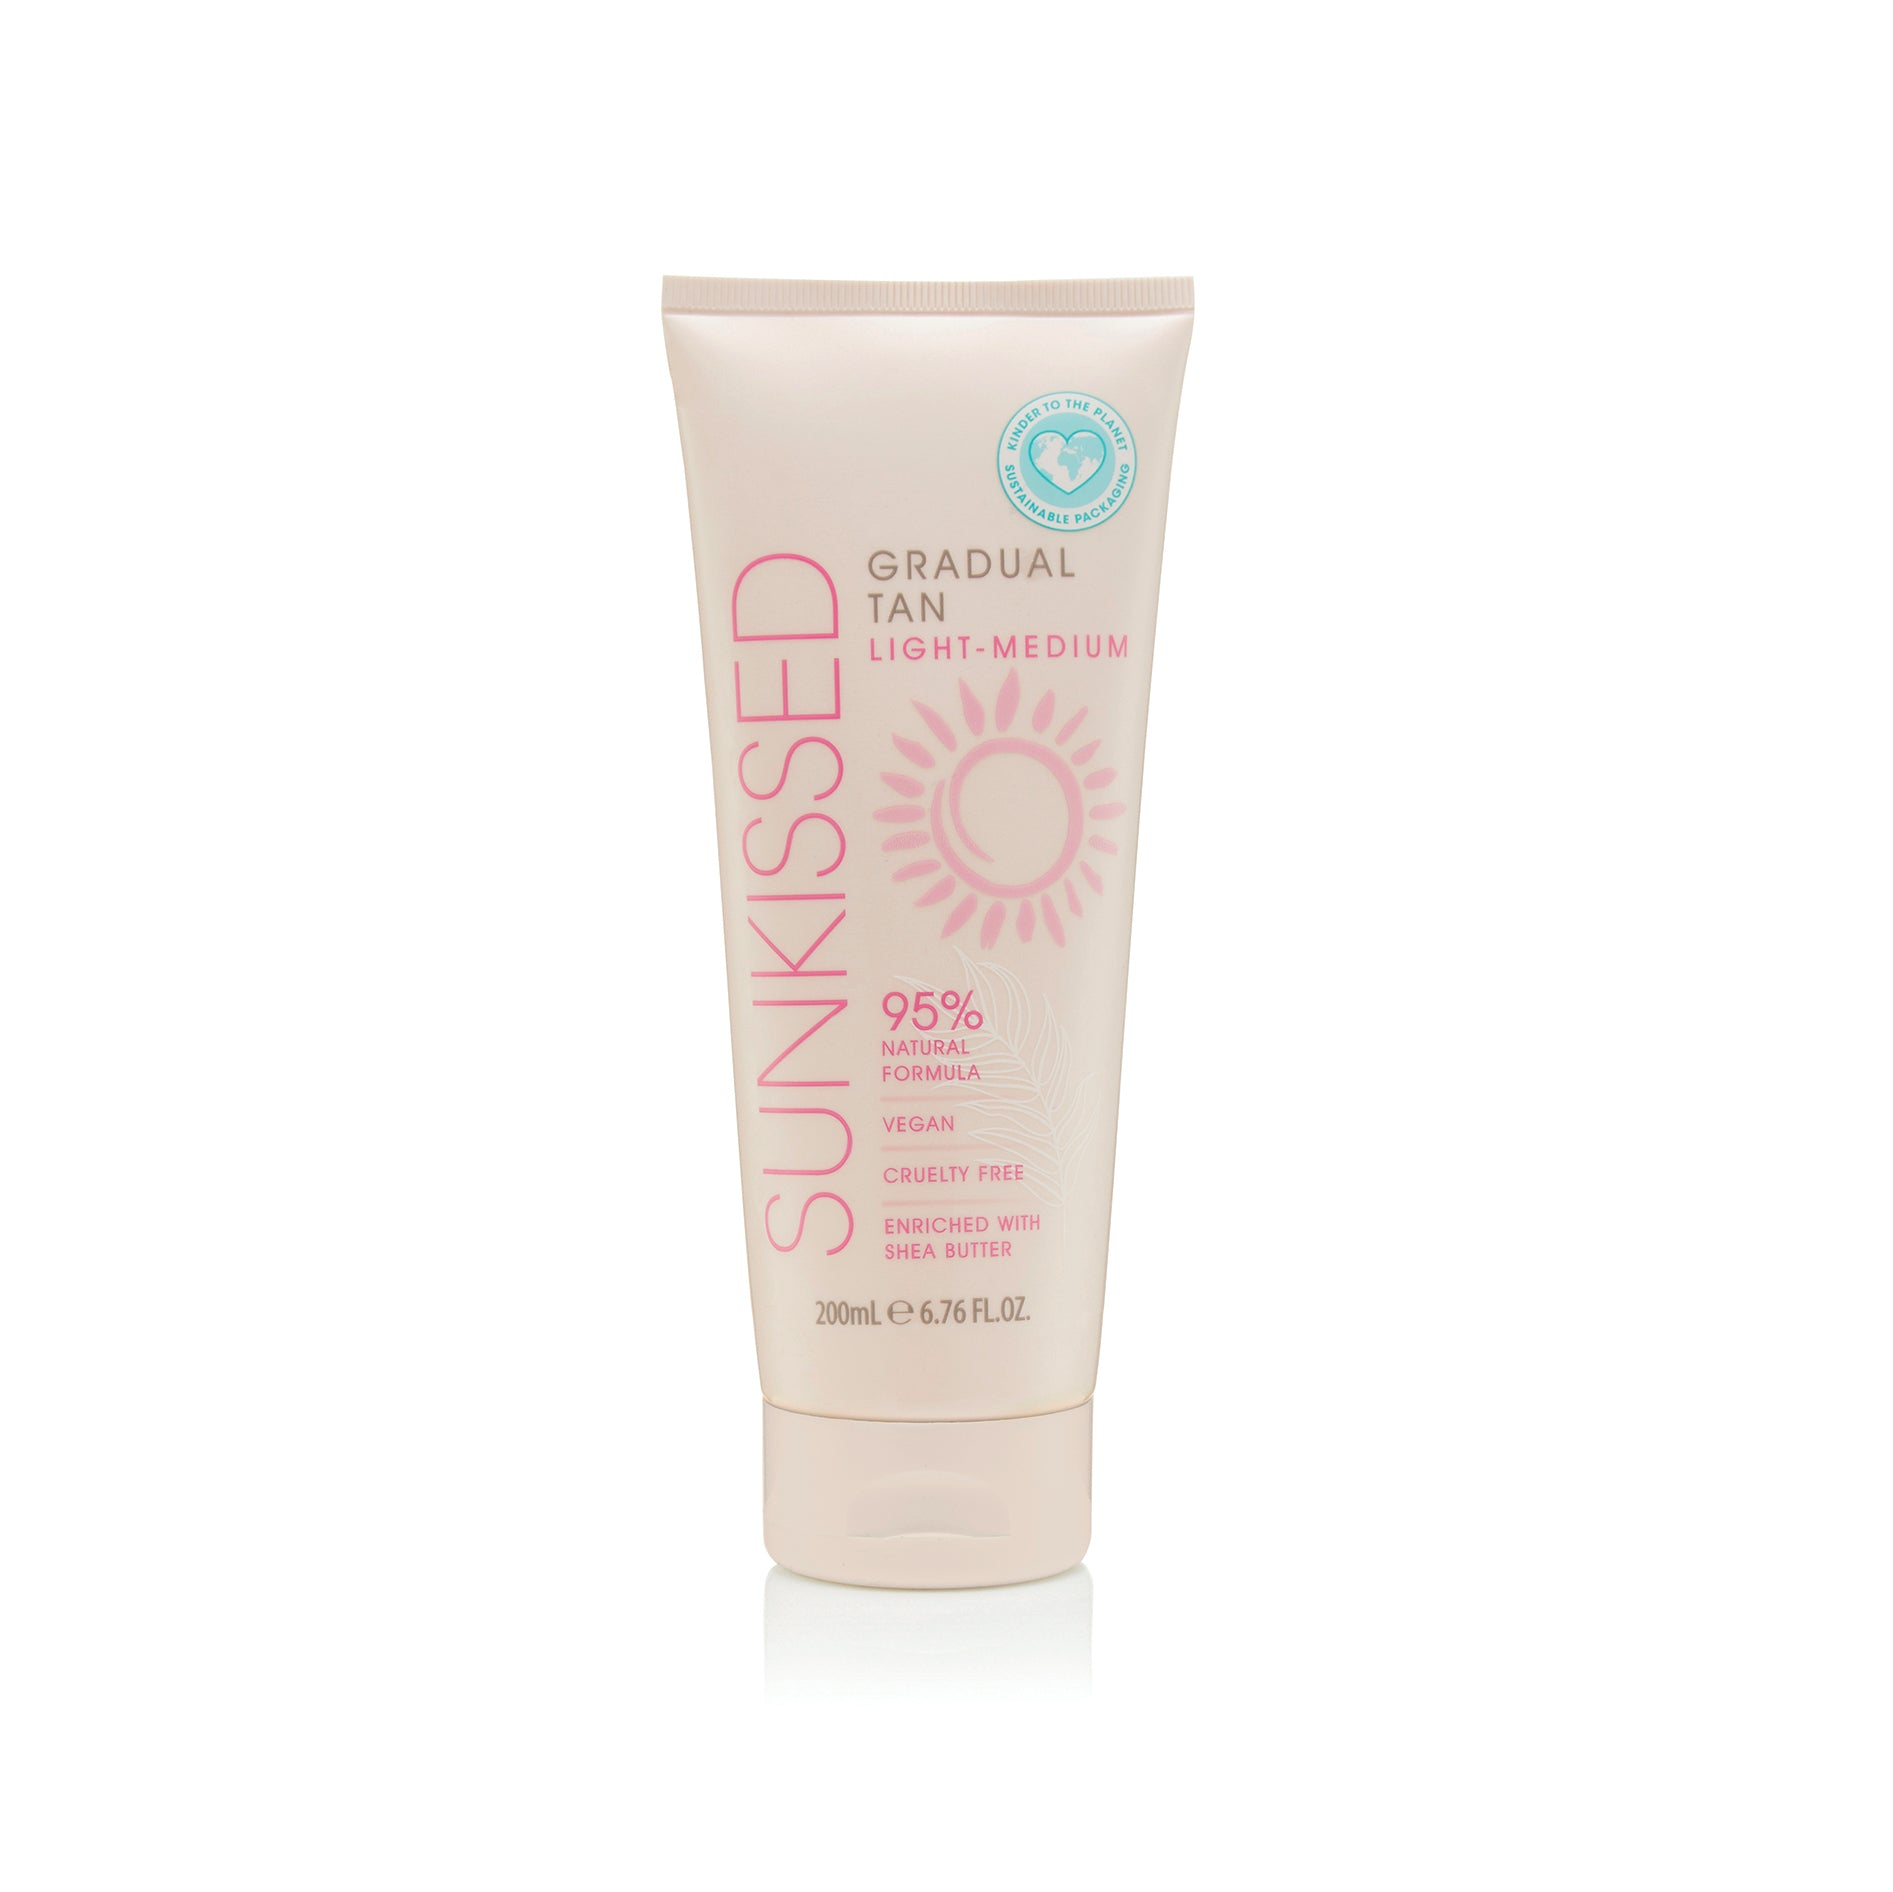 Sunkissed Gradual Tan